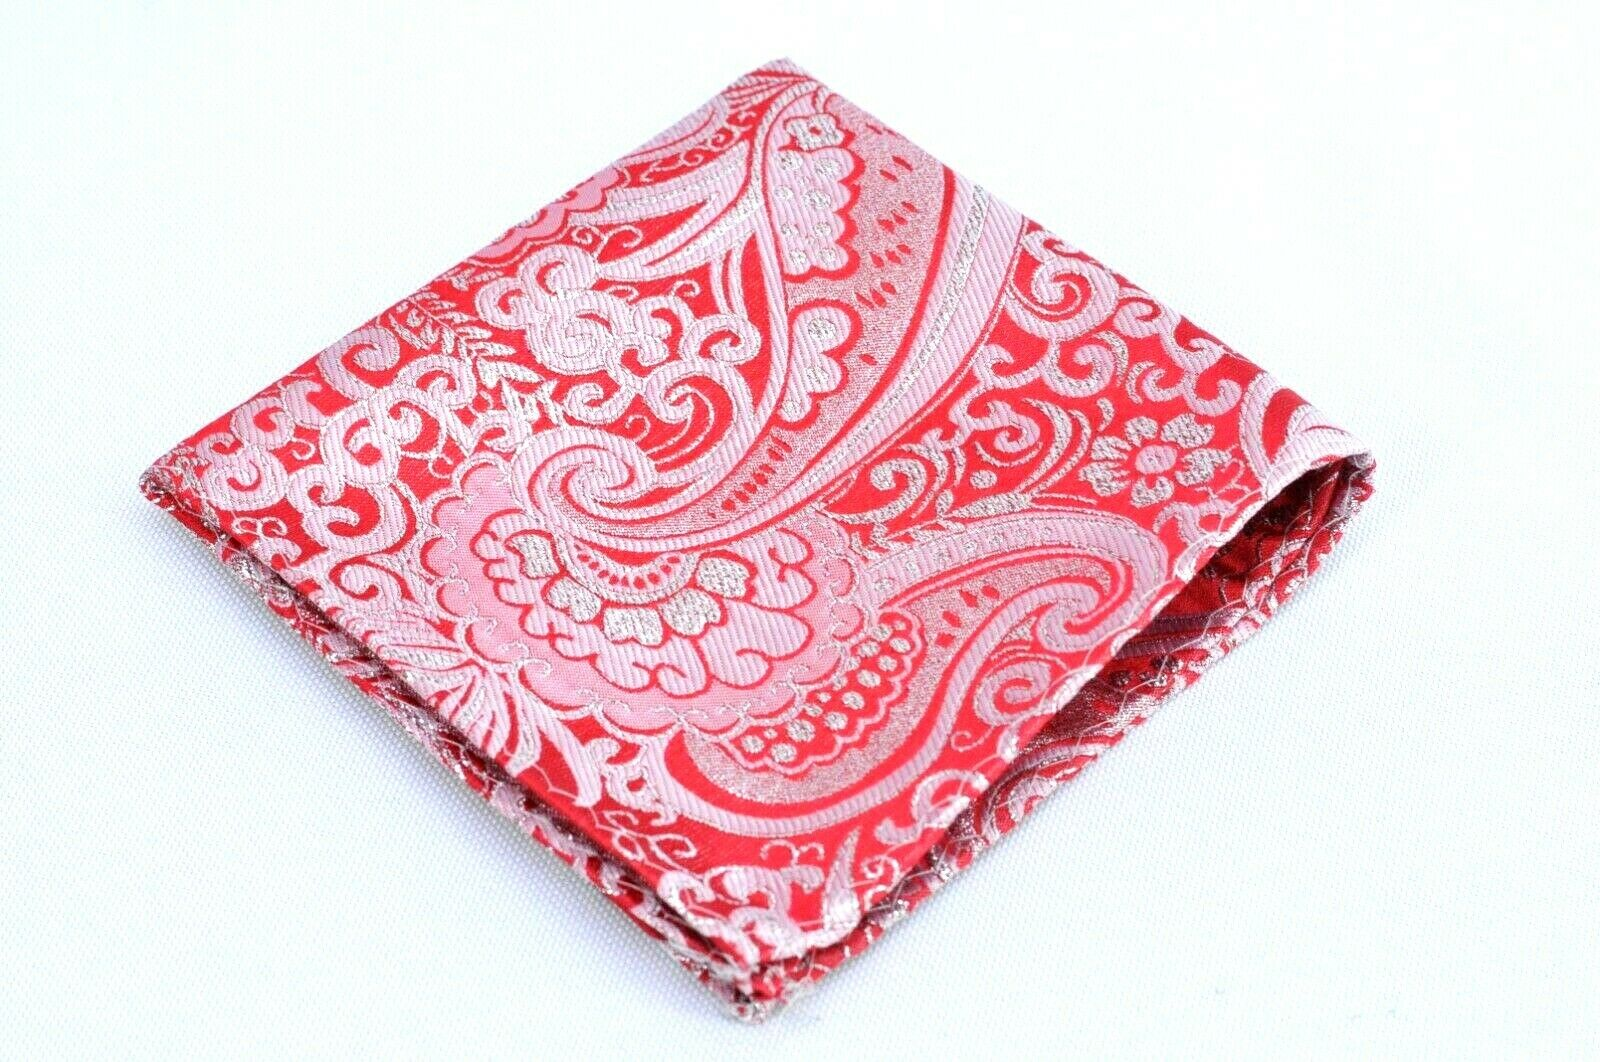 Lord R Colton Masterworks Ruby Silver Dust Paisley Silk Pocket Square - New